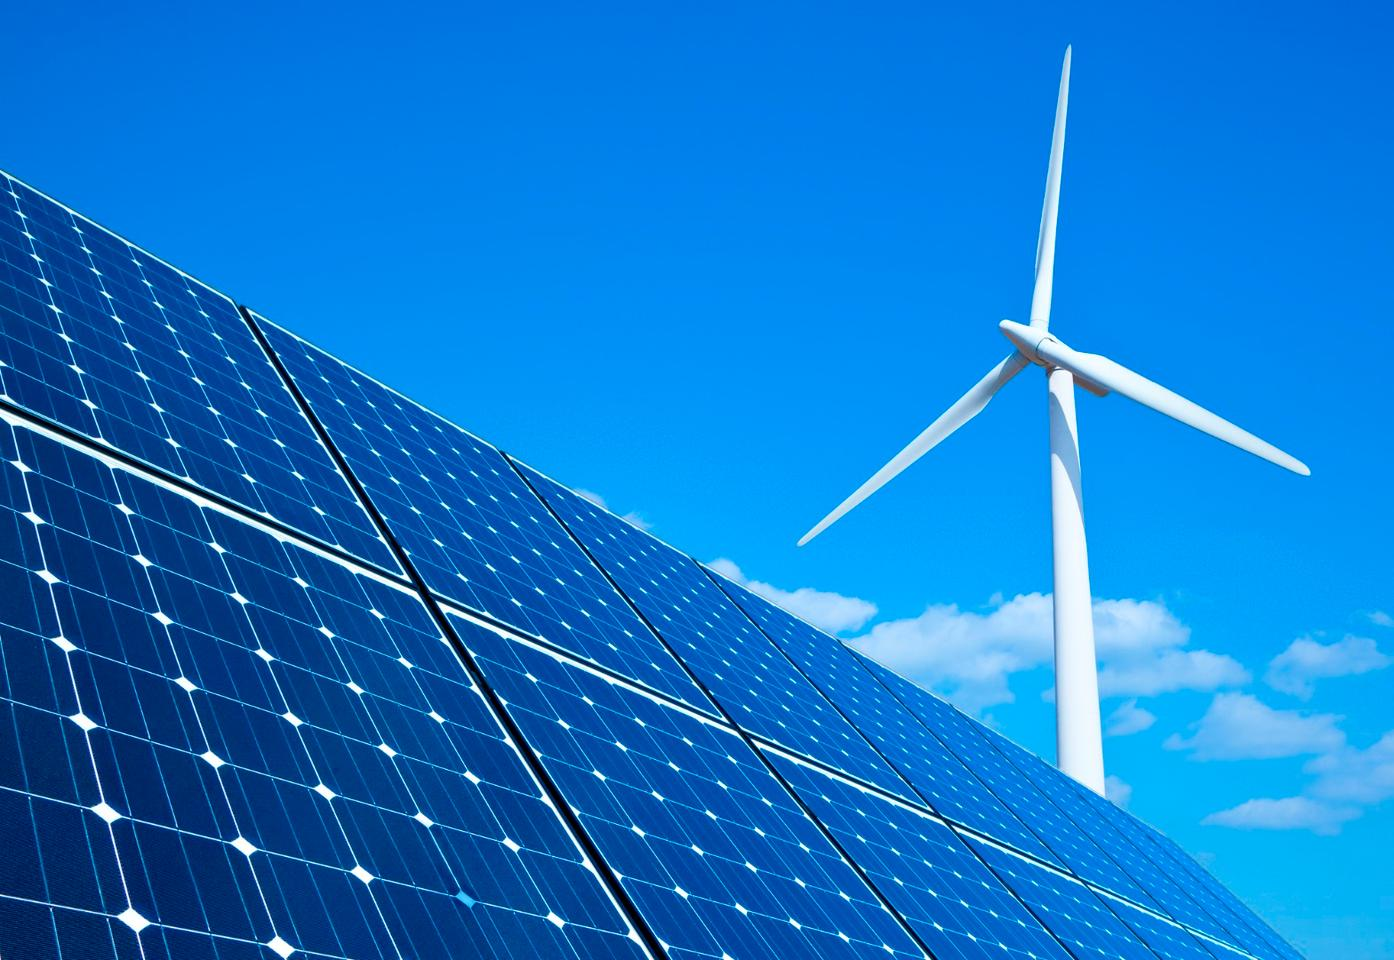 To make renewables more competitive, the US Department of Energy has set a goal of developing a flow battery that can store energy at less than US$100 per kilowatt-hour